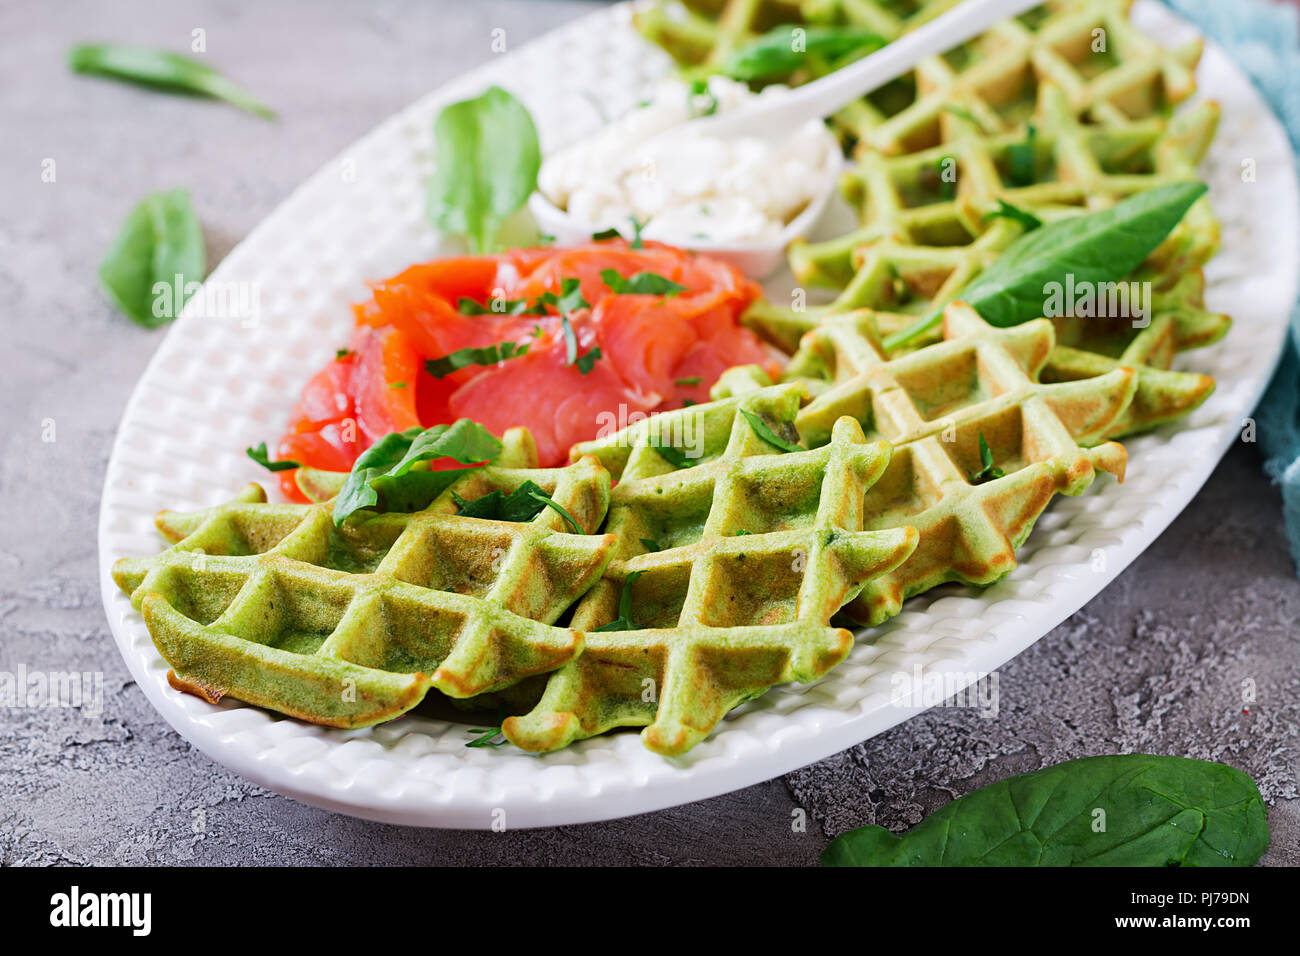 Savory waffles with spinach and cream cheese, salmon in white plate. Tasty food. - Stock Image